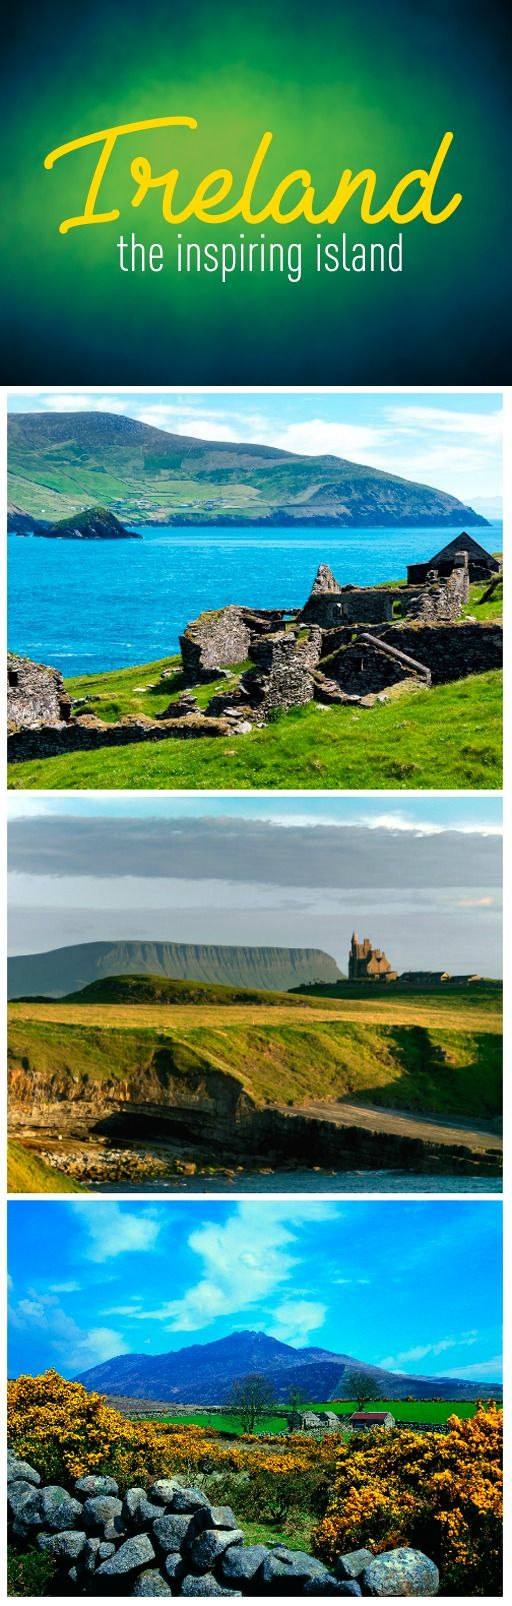 When you walk through Ireland's staggeringly beautiful landscapes, breathing in fresh air that's washed over wild, blooming hedgerows, rolling fields, and towering cliffs, even the least artistic of us can feel inspired! So just imagine how J.R.R. Tolkien, W.B. Yeats, and C.S. Lewis felt when they drank in the views and tranquility of this beautiful little island…and went on to write some of the world's most beloved literature.